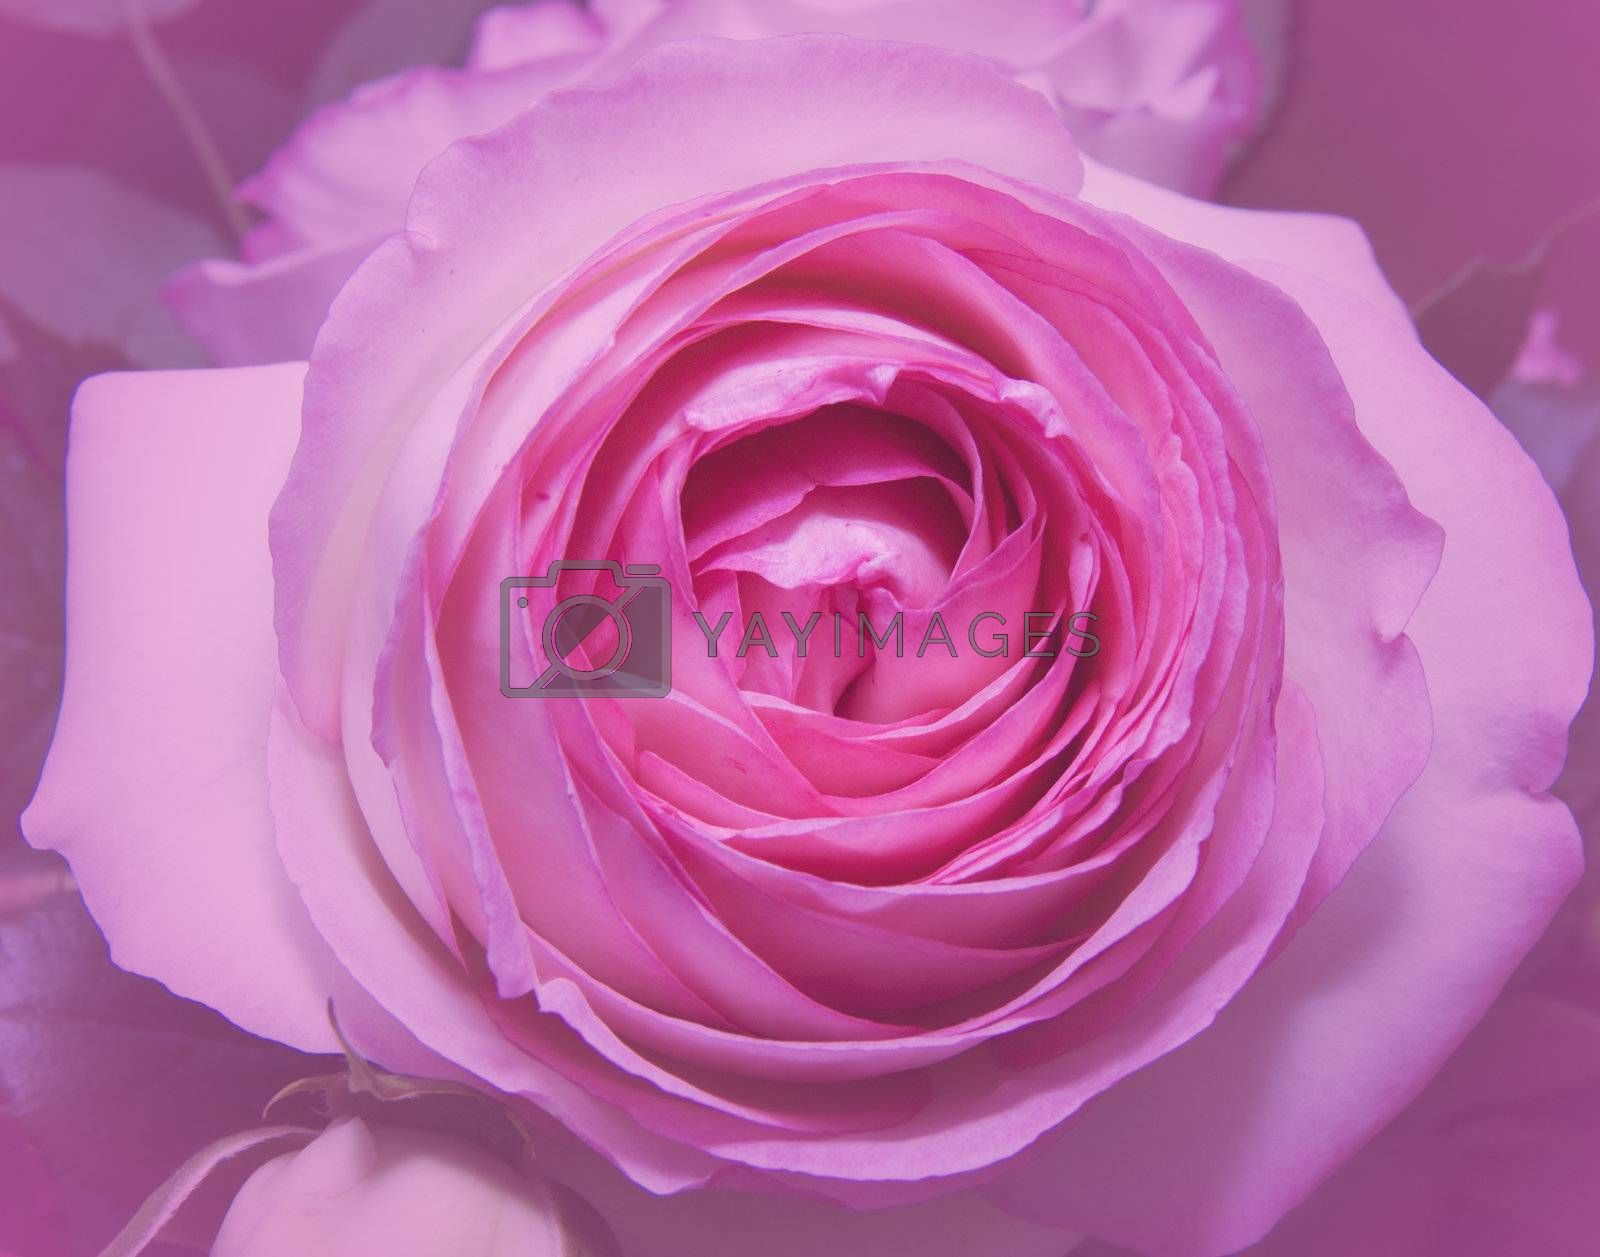 Royalty free image of Pink Rose by Koufax73